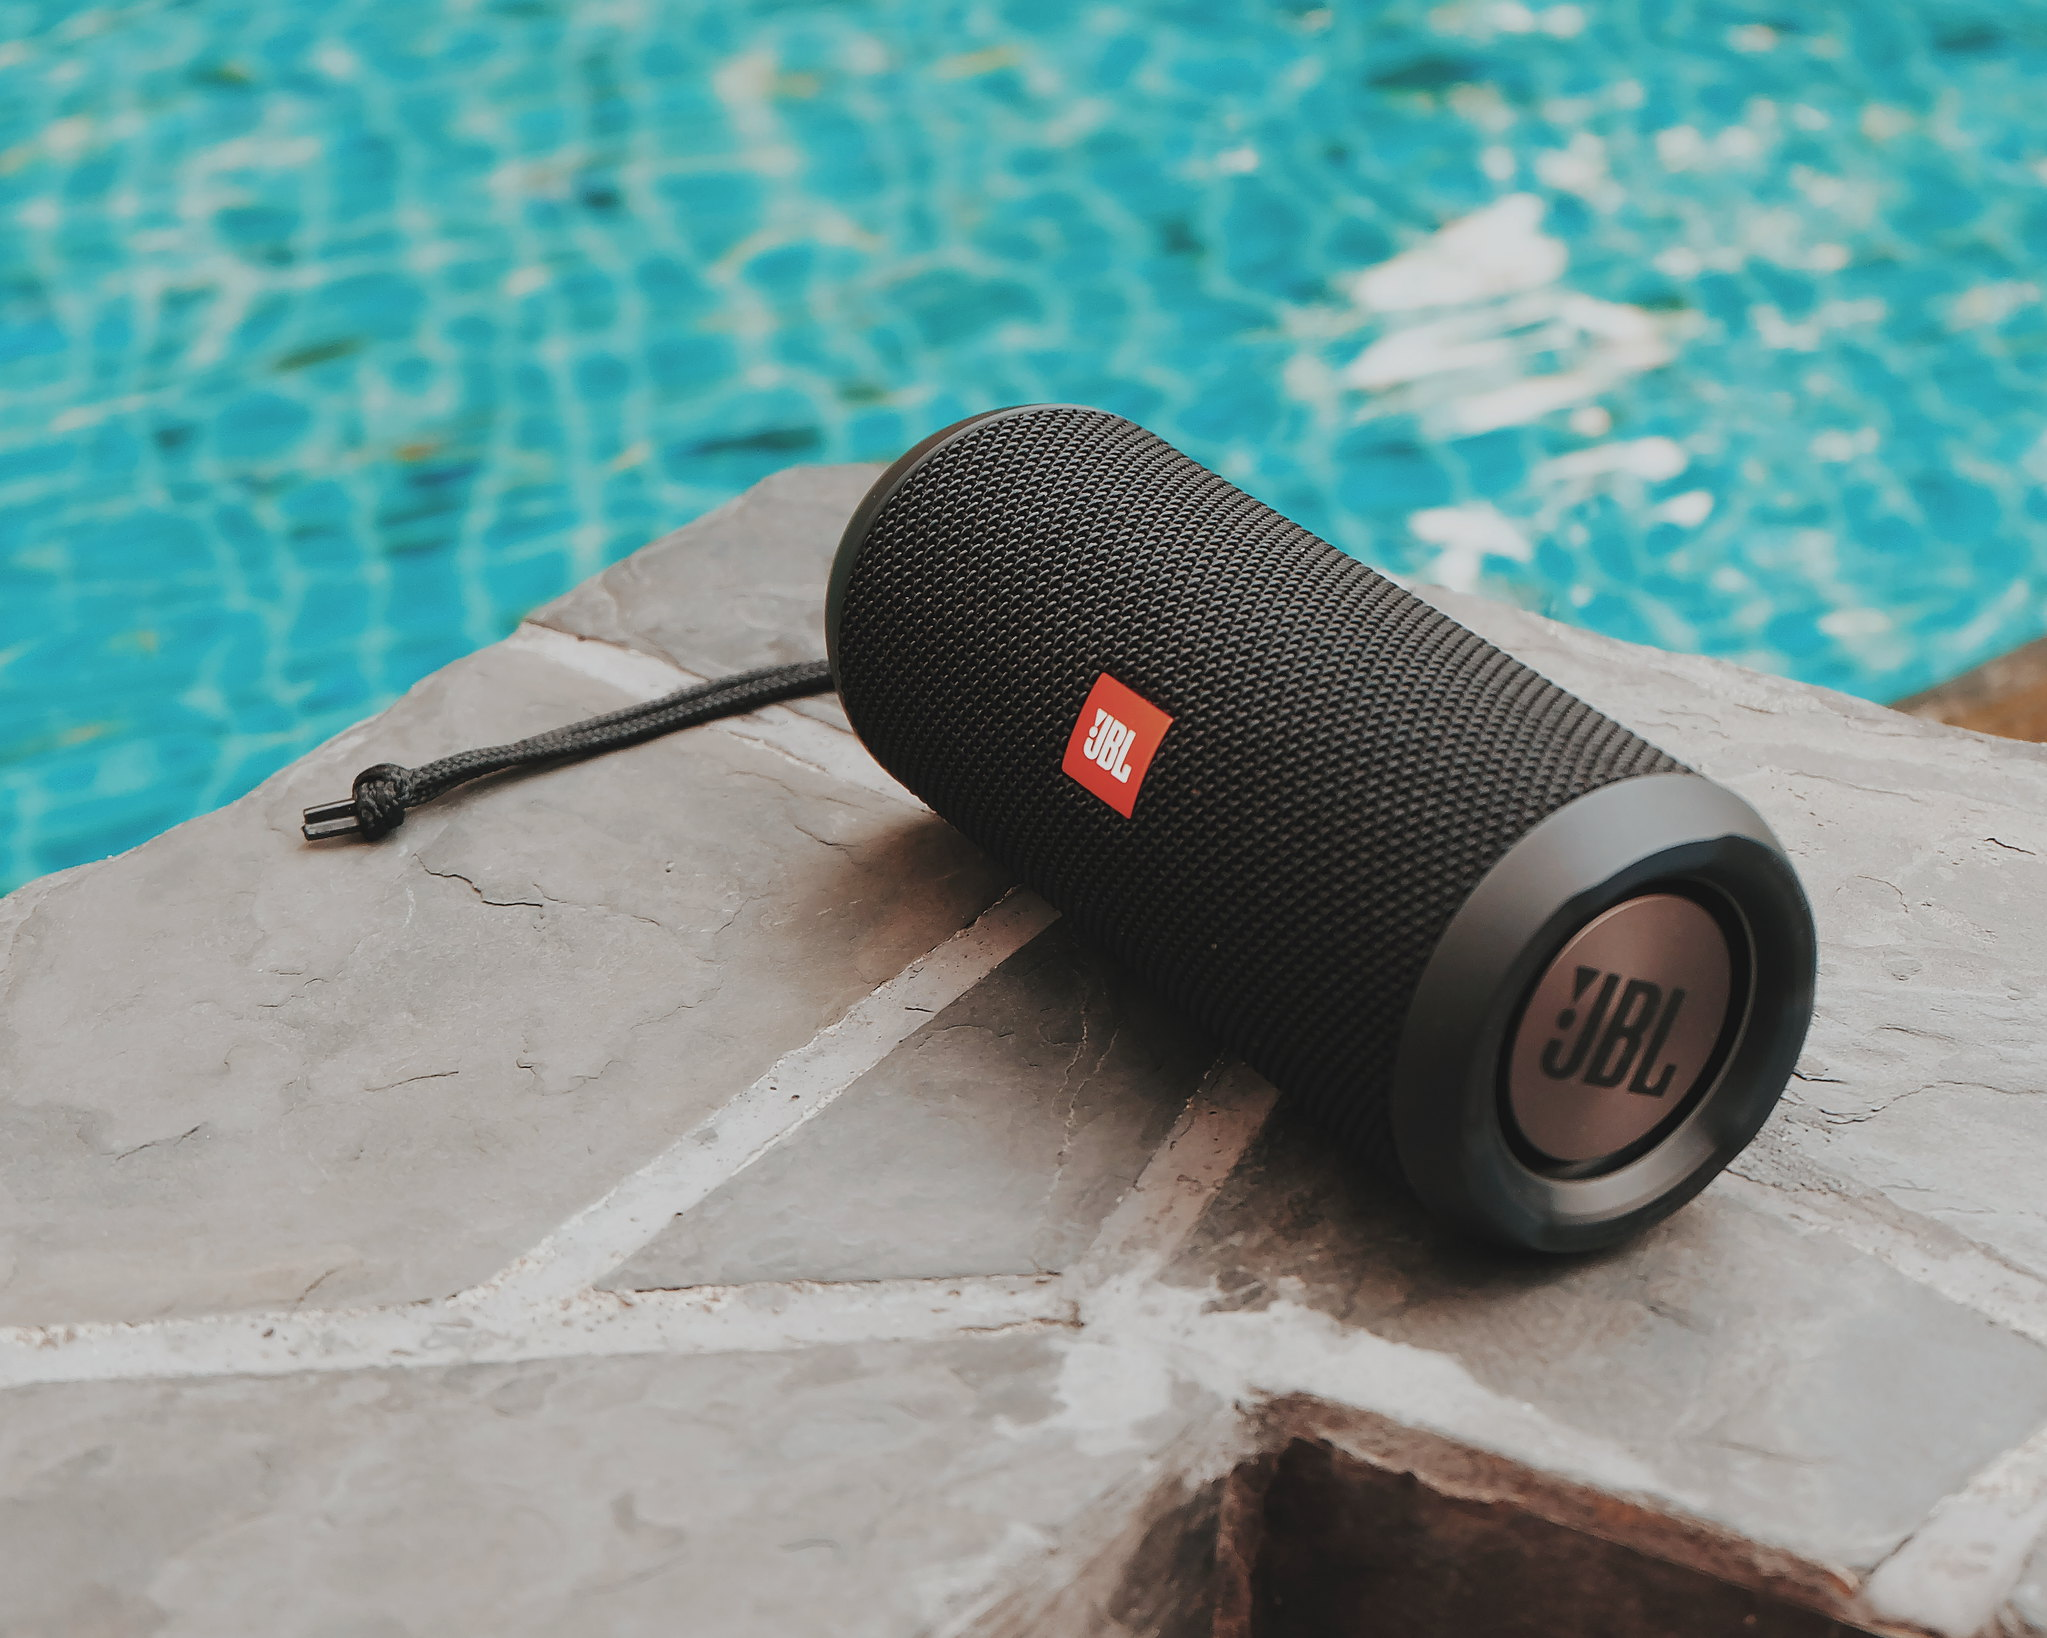 JBL Flip 3 Speaker Review: Splashproof, Portable and Powerful